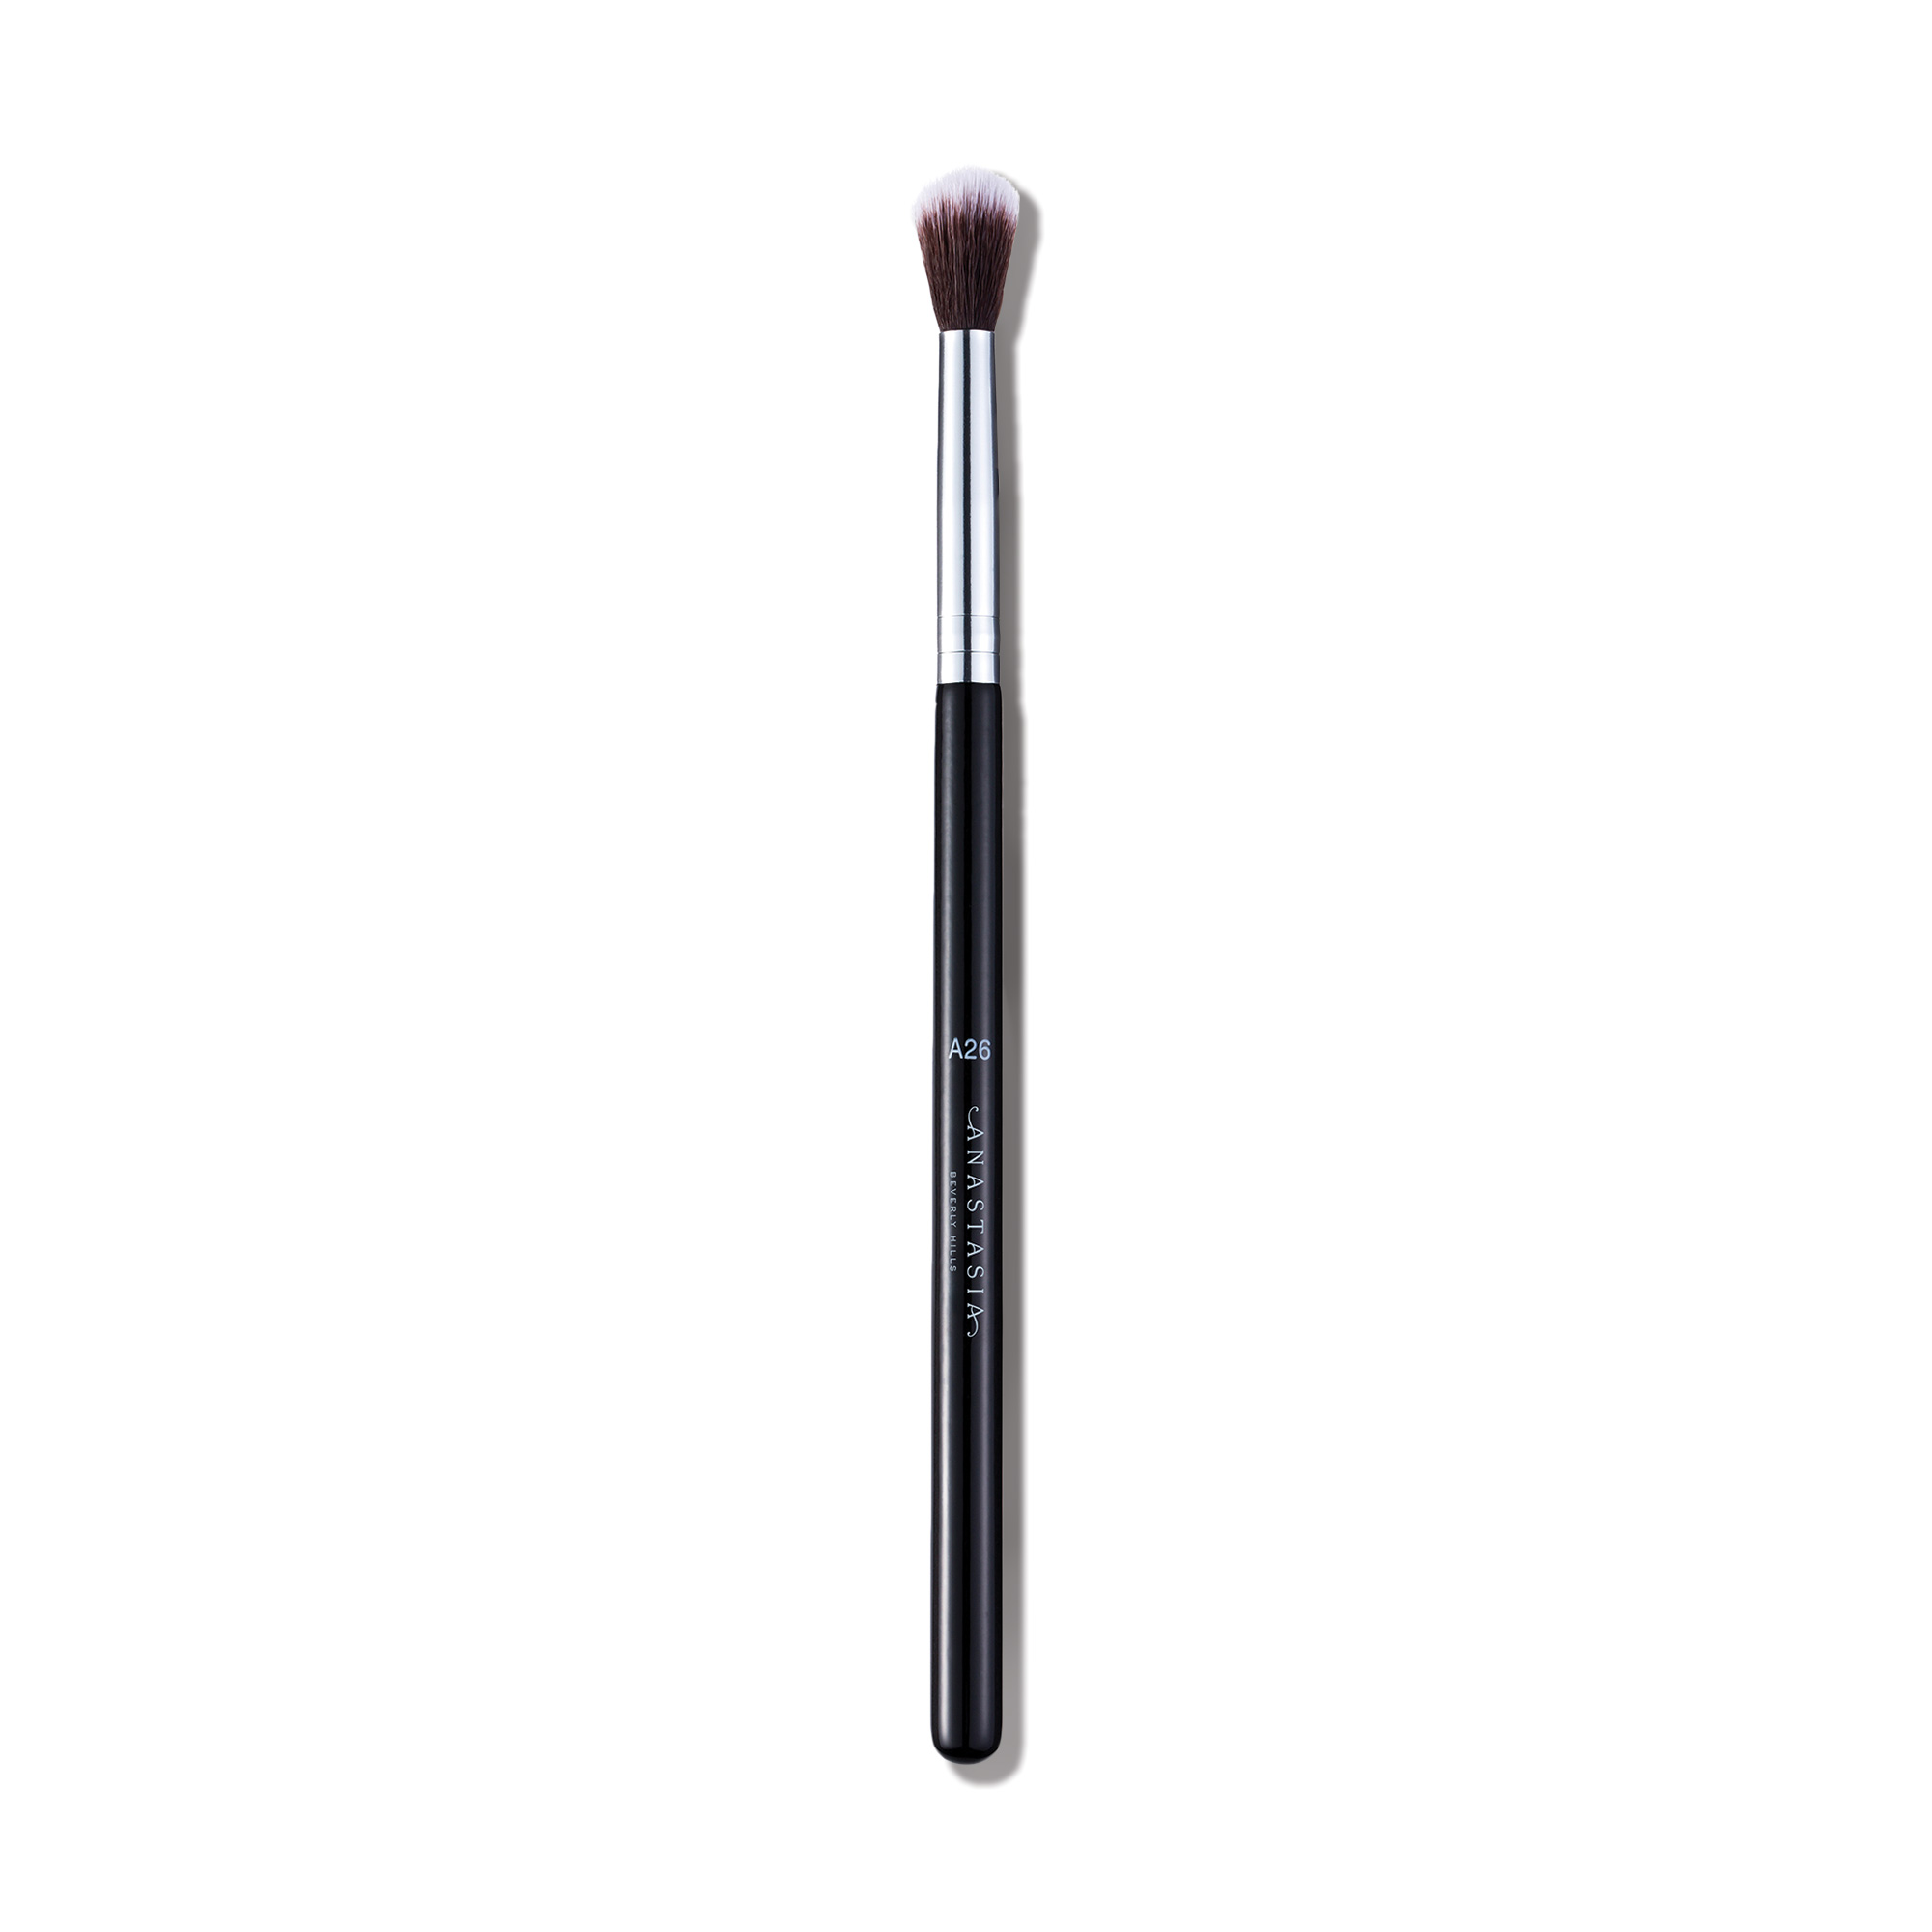 A26 Pro Brush - Crease Blending Brush